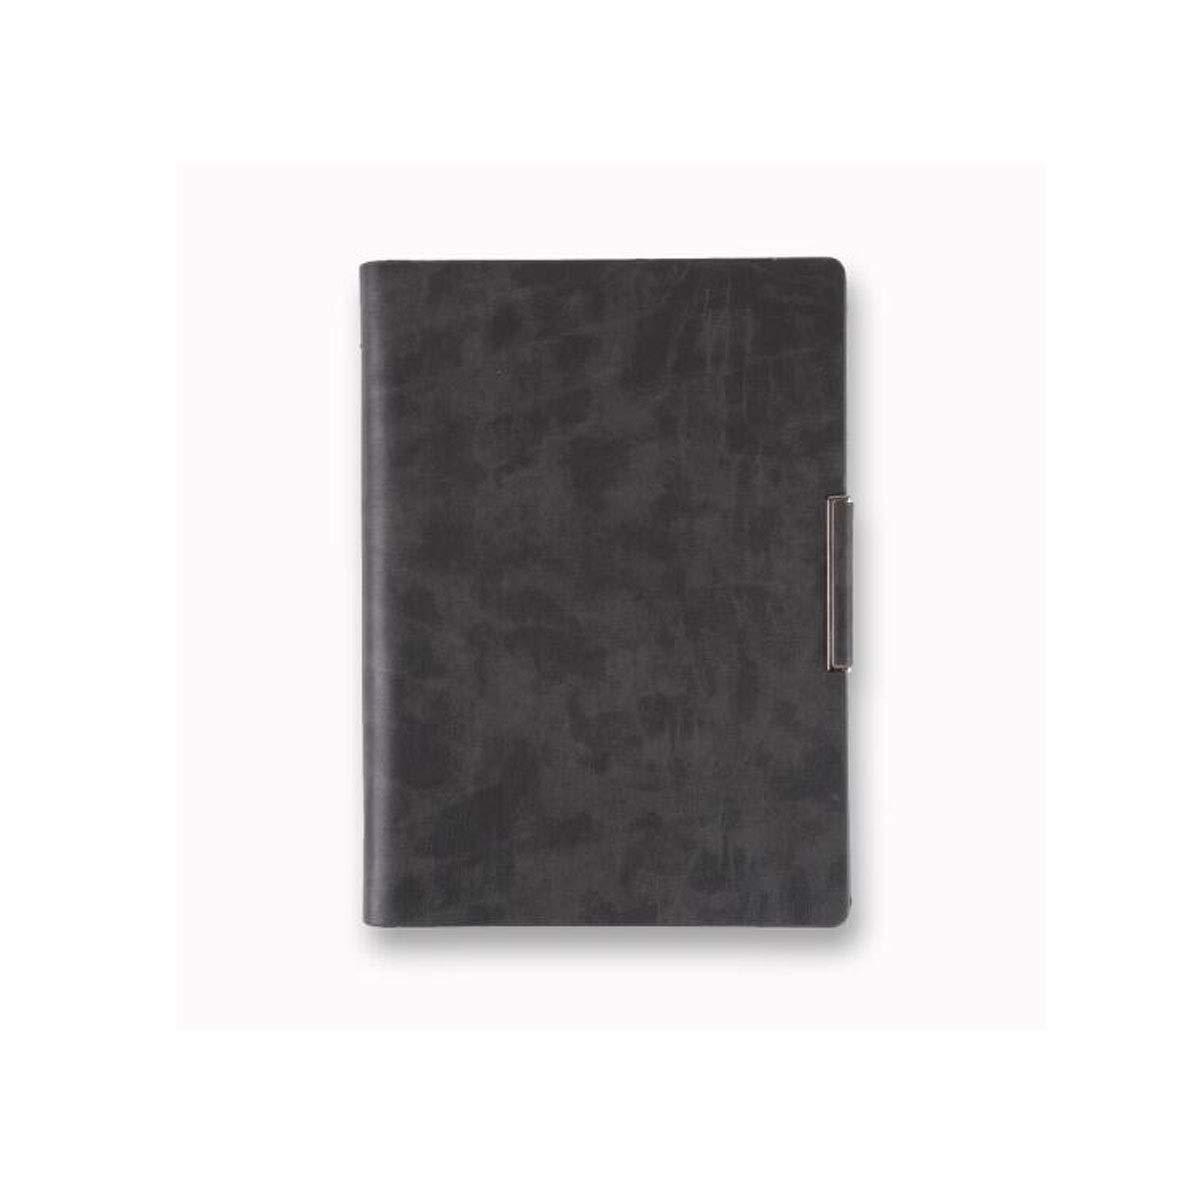 TONGBOSHI Office High-end Notebook Advanced Business Notebook, Imitation Leather Retro Pendant Loose-Leaf Notepad Office Stationery, Black, Gray (21 27.5cm) Note Notebook (Color : Gray)